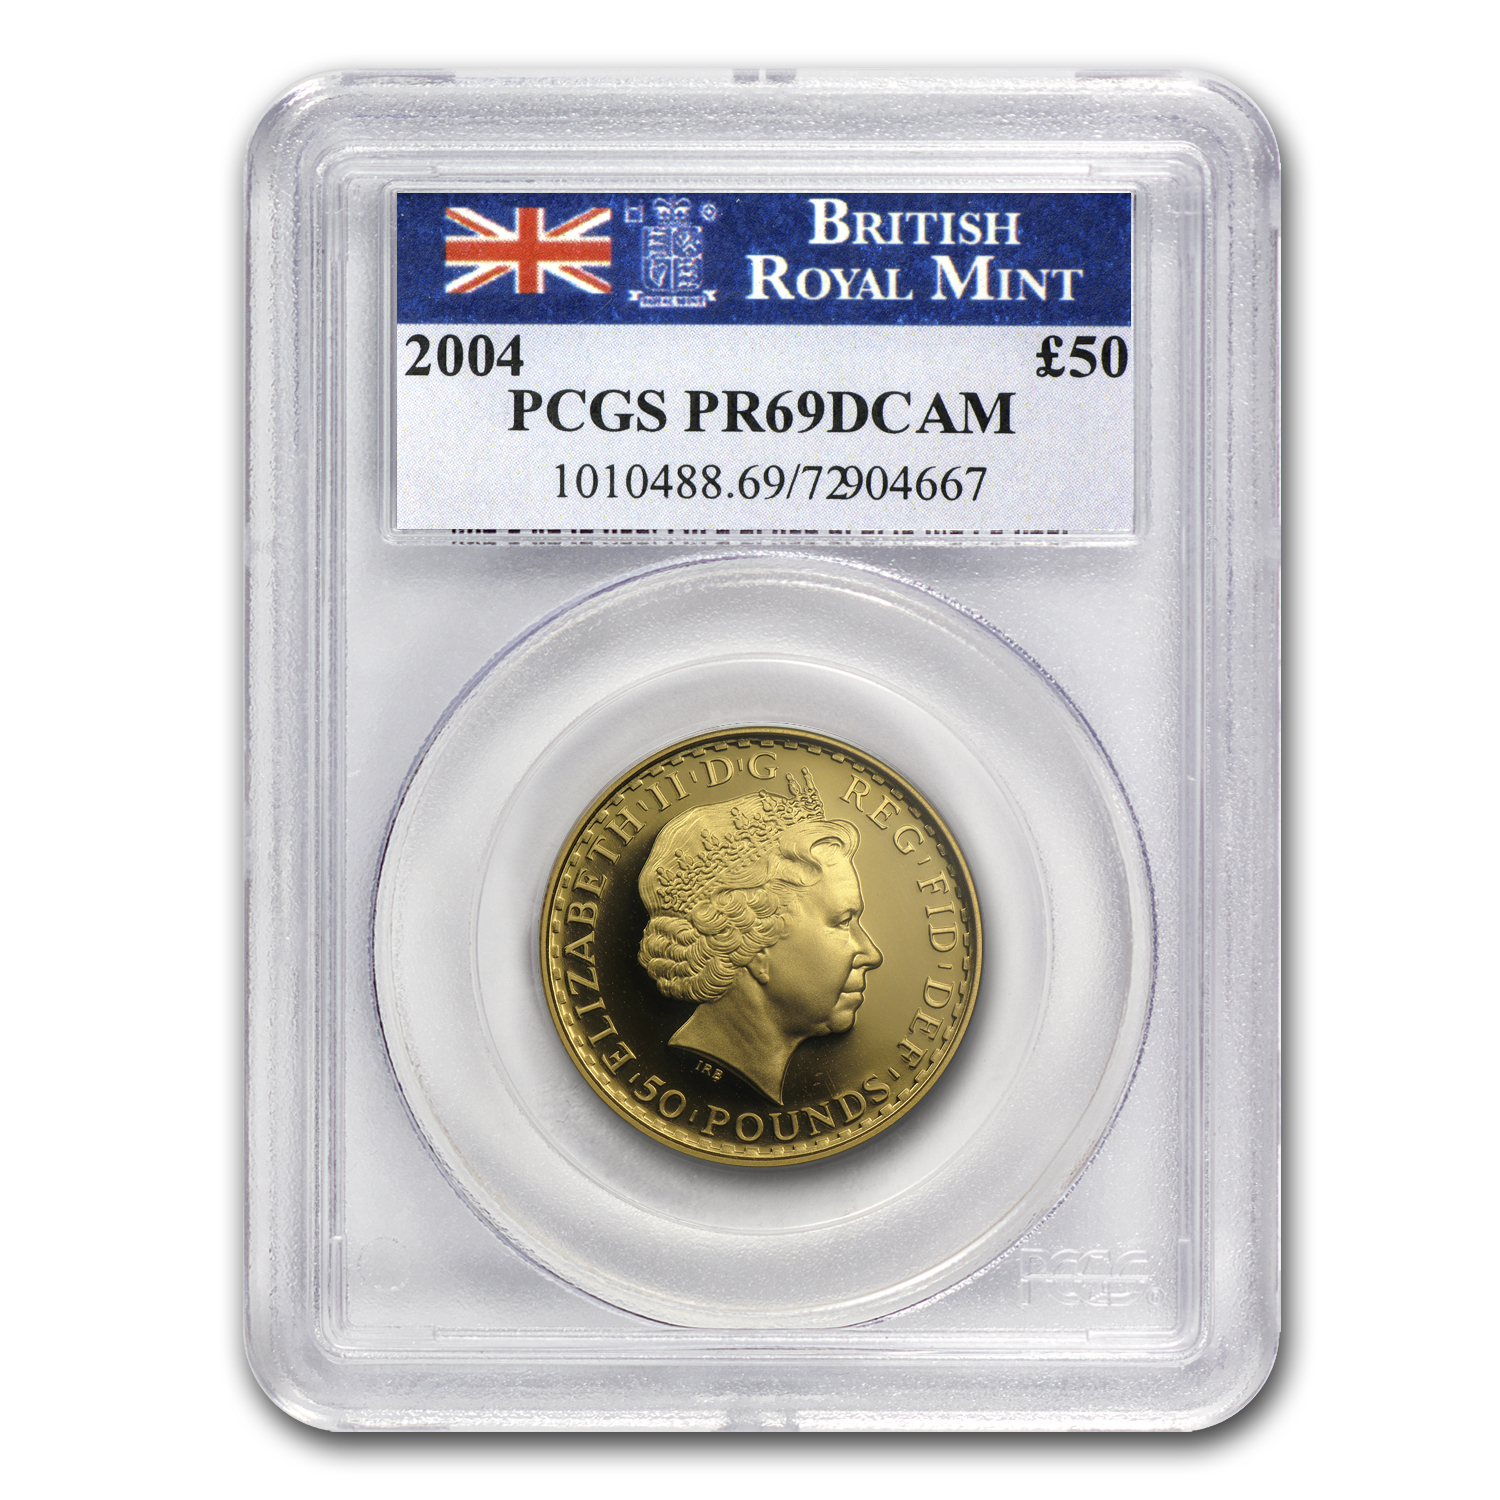 2004 Great Britain 1/2 oz Proof Gold Britannia PR-69 PCGS